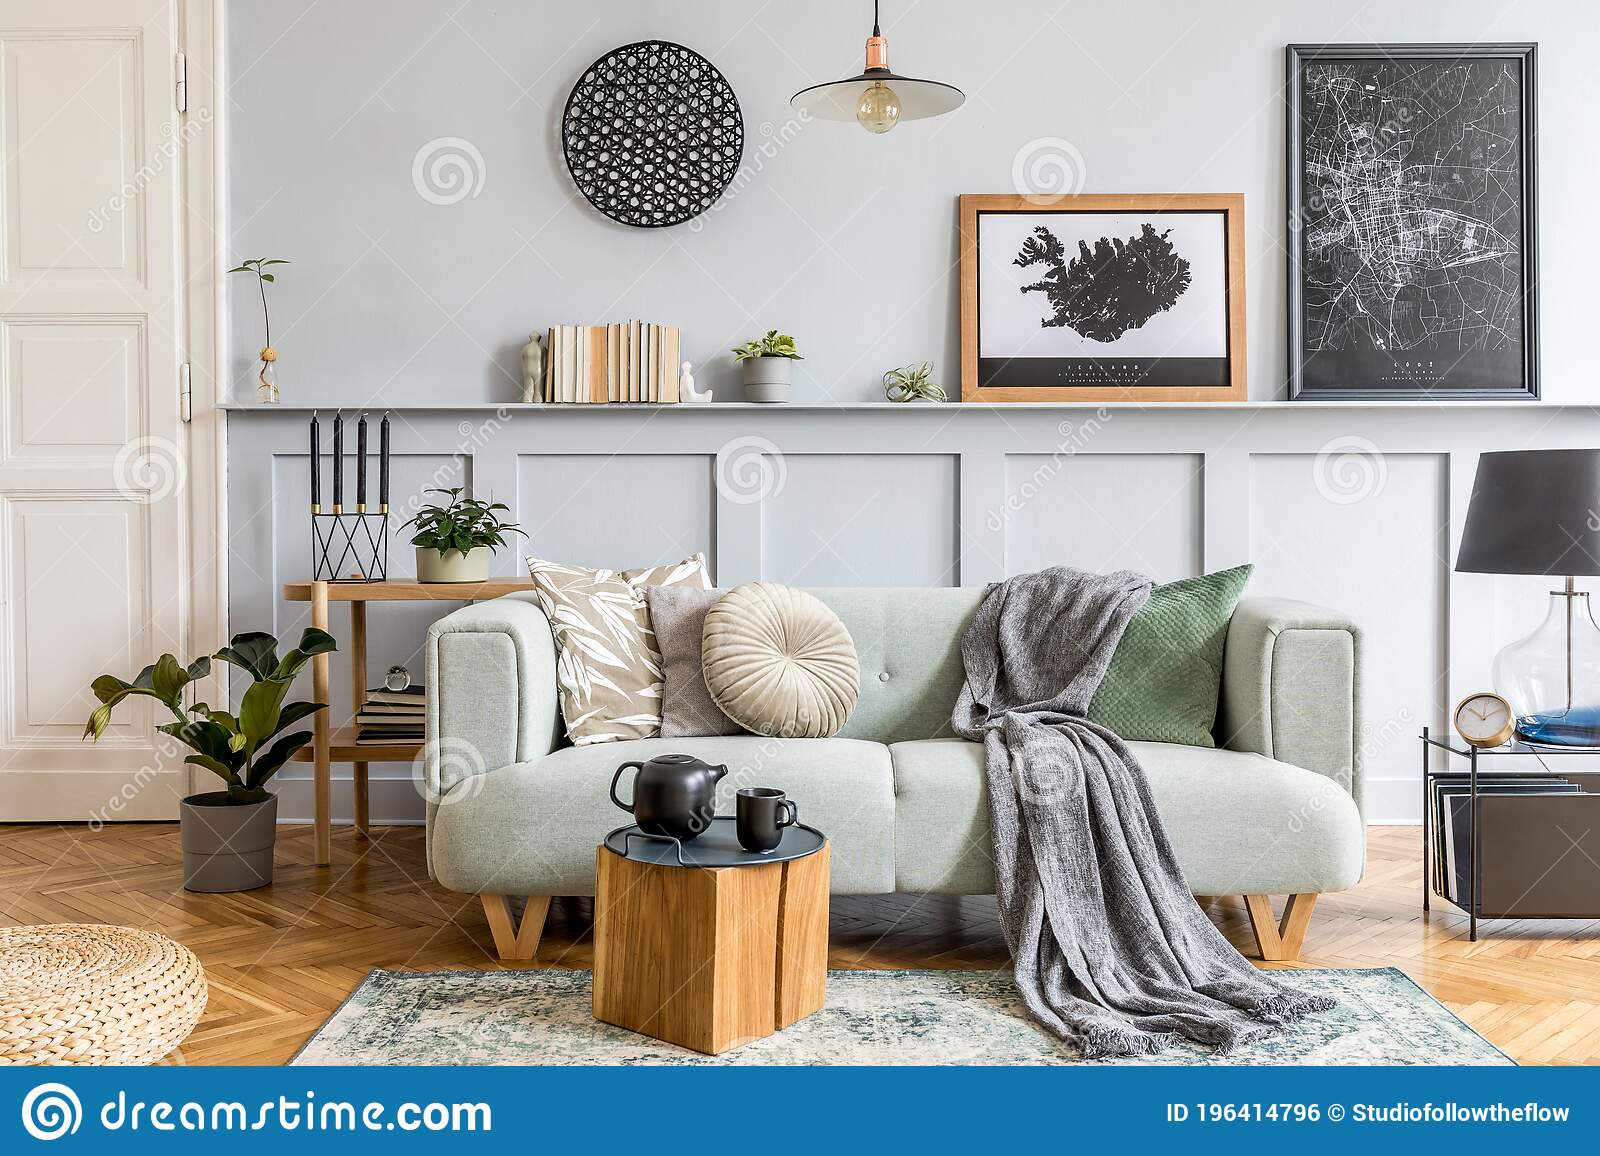 stylish interior design of living room with modern mint sofa wooden console cube coffee table lamp plant mock up poster stock photo image of modern interior 196414796